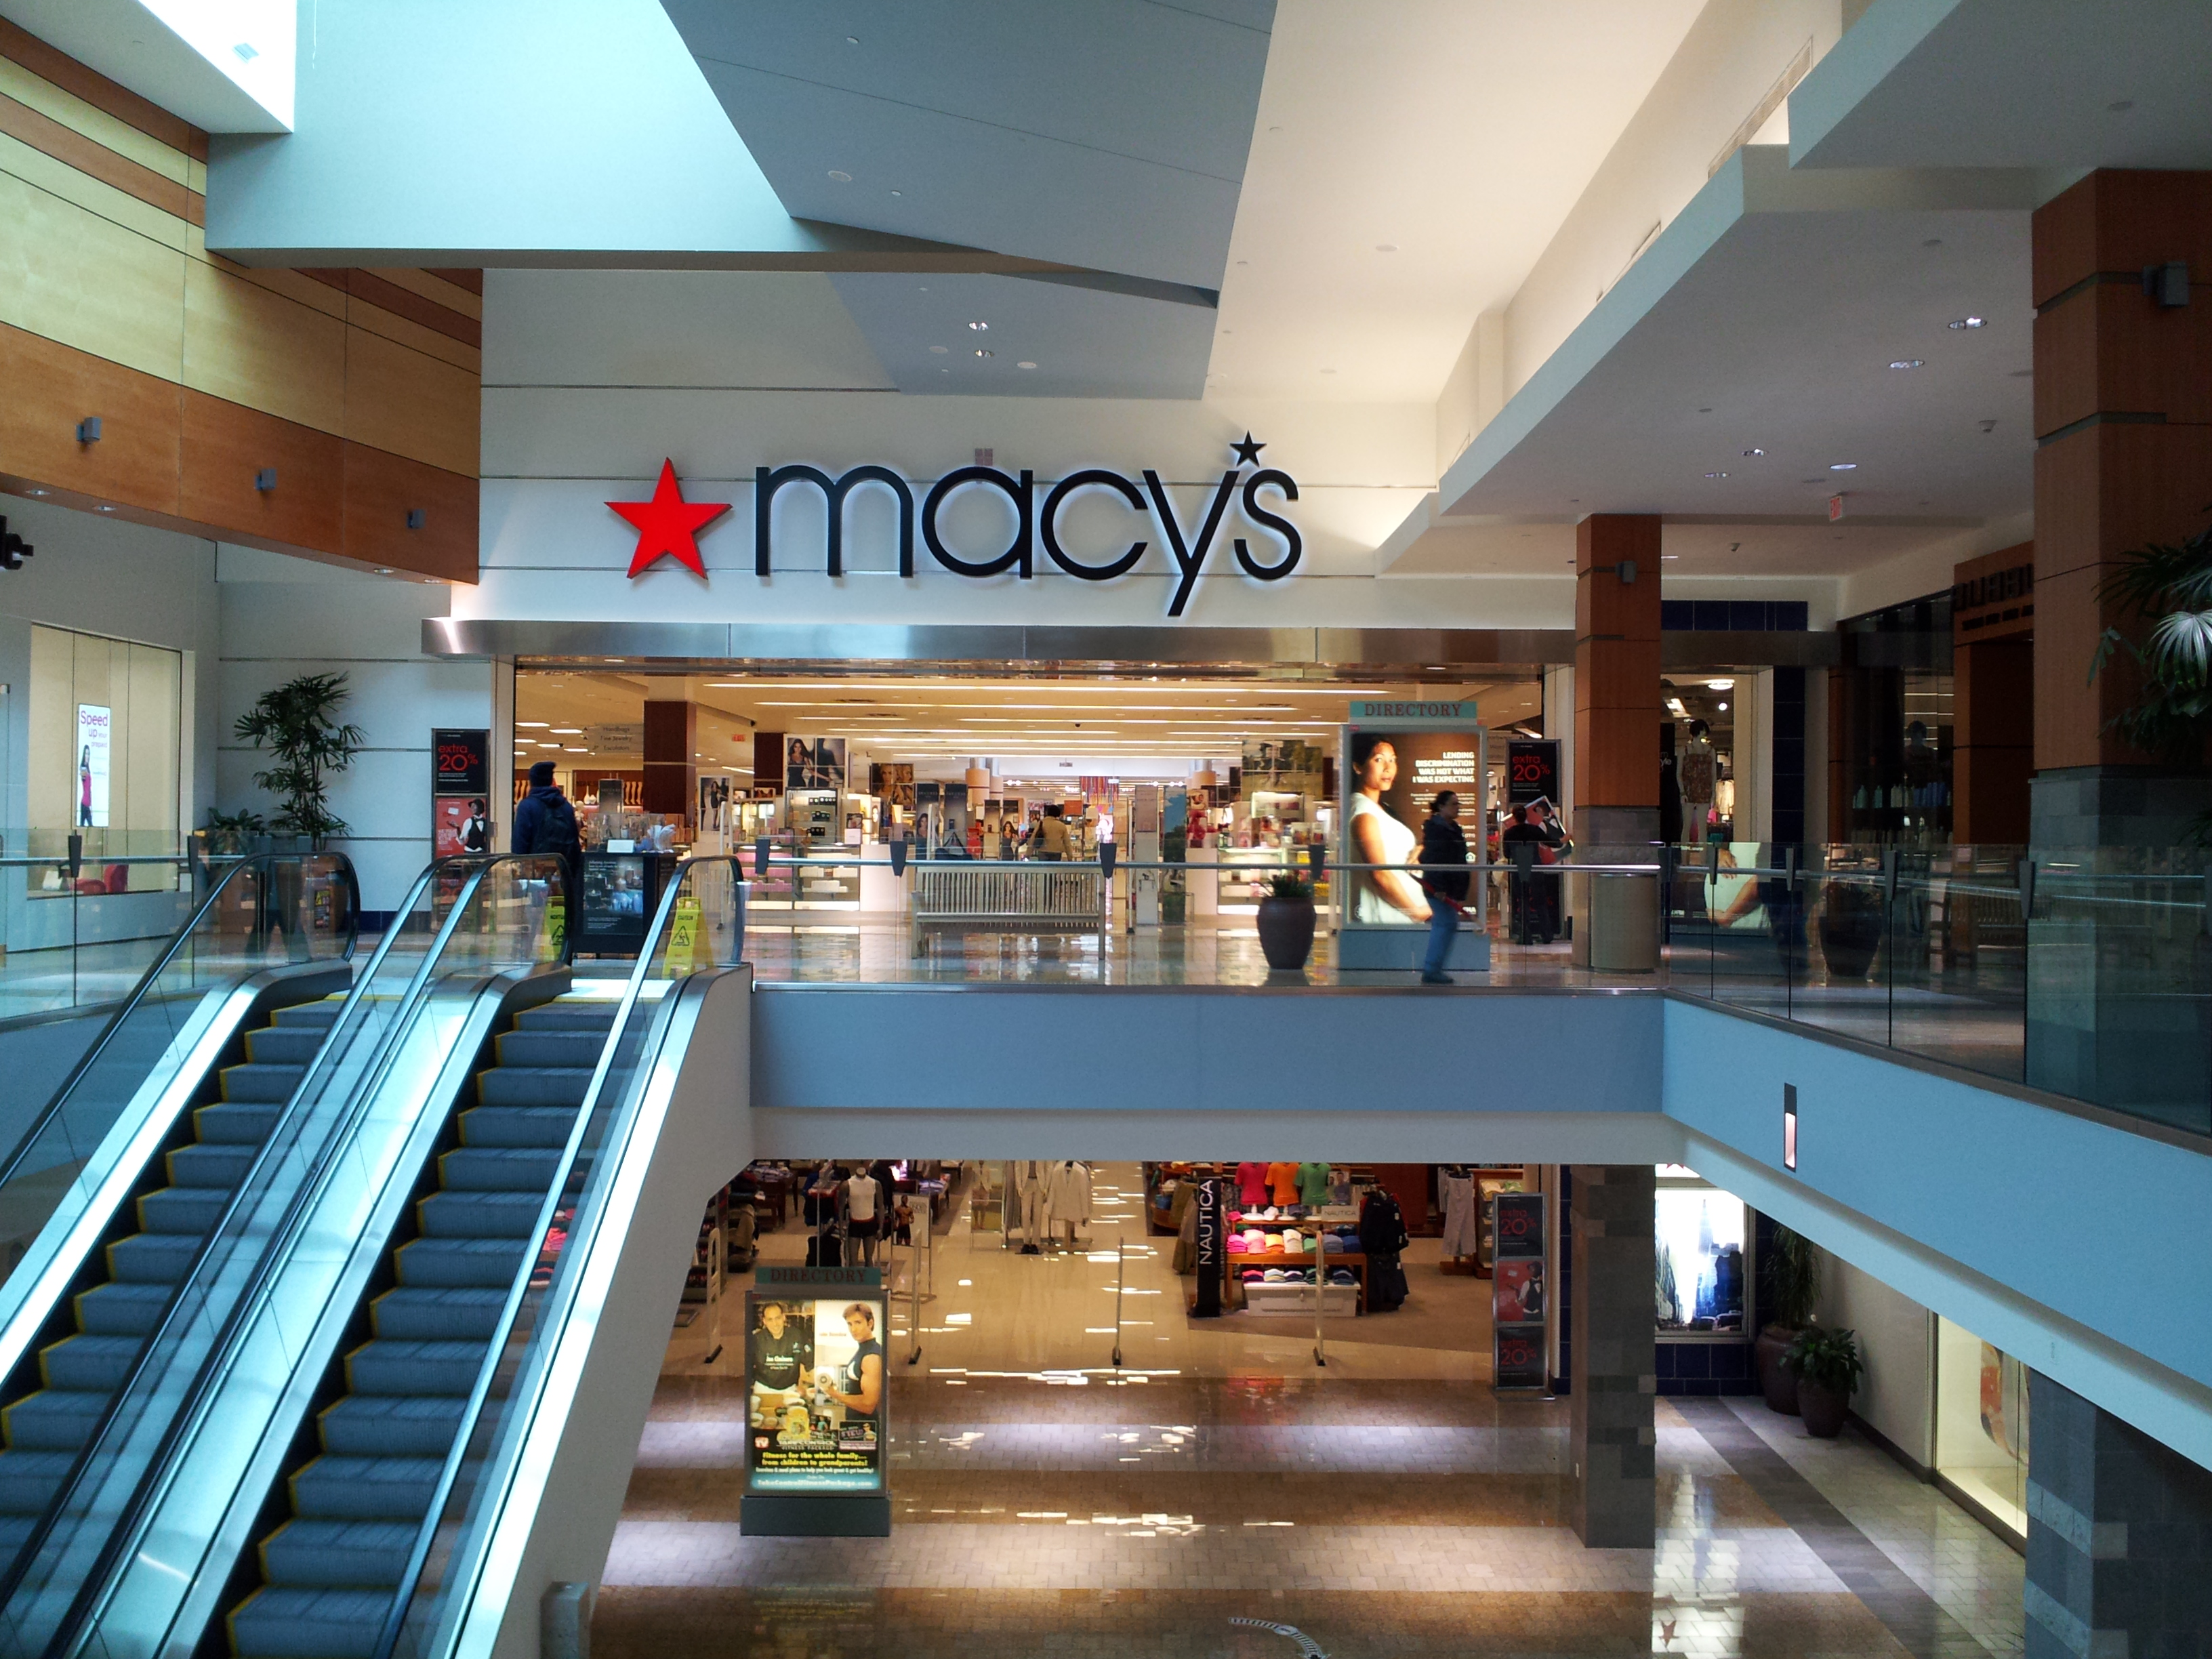 Touting the latest fashions and affordable luxury, Macy's is definitely a household name amongst chic shoppers. Store closures around the country has had an impact on in-store shopping opportunities, but Macy's has started running more frequent and better deals online instead.